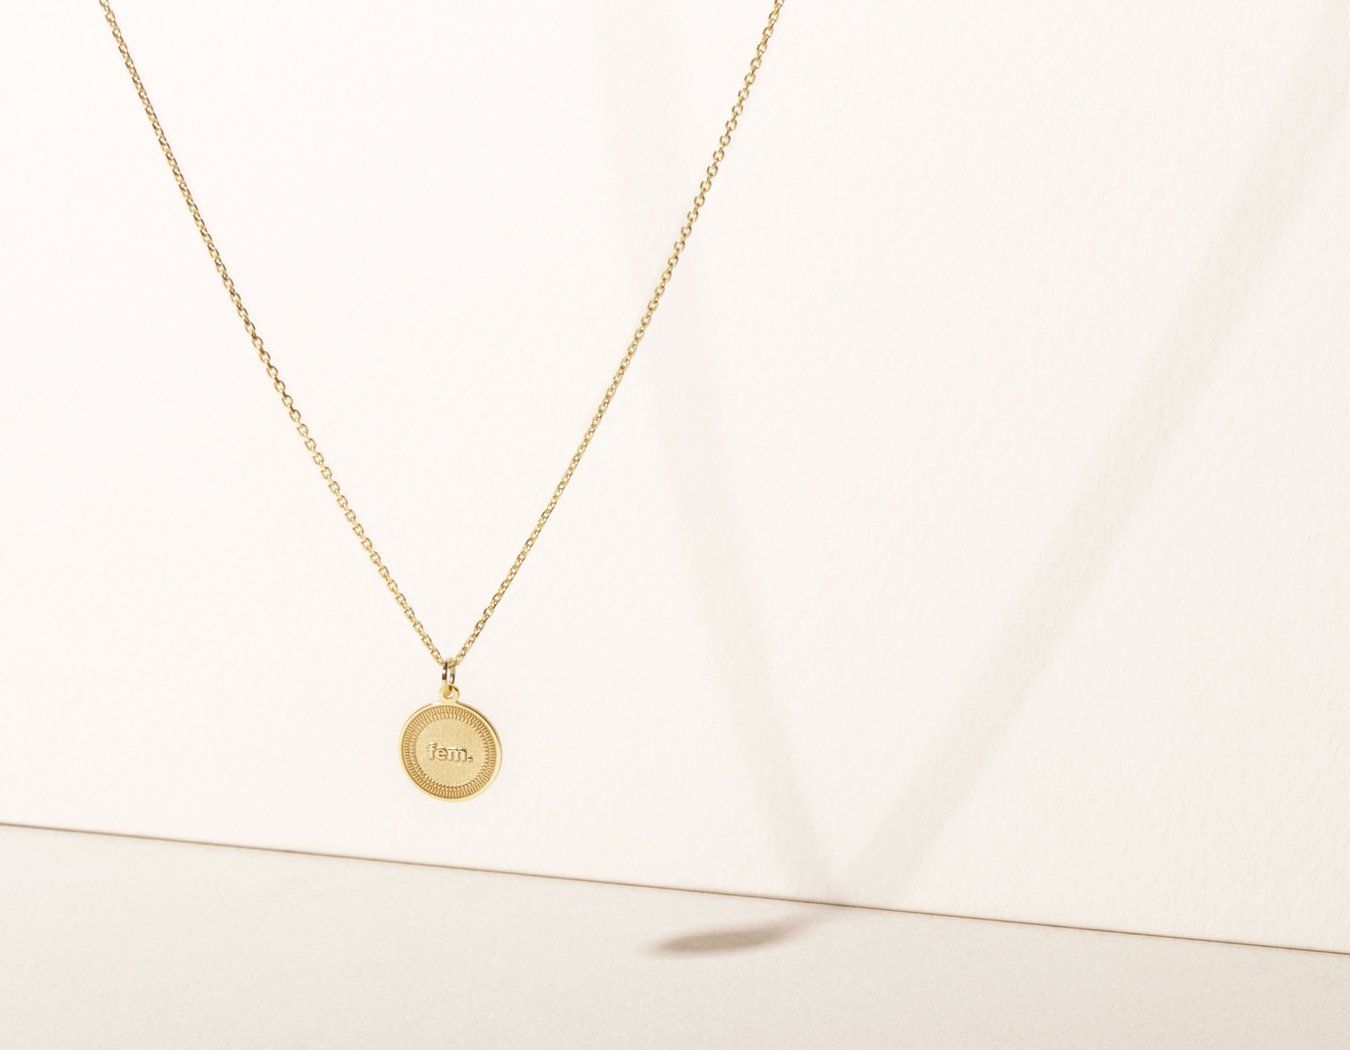 e593aedbfae simple modern 14k solid yellow gold Fem. Necklace circle female pendant on  delicate 18